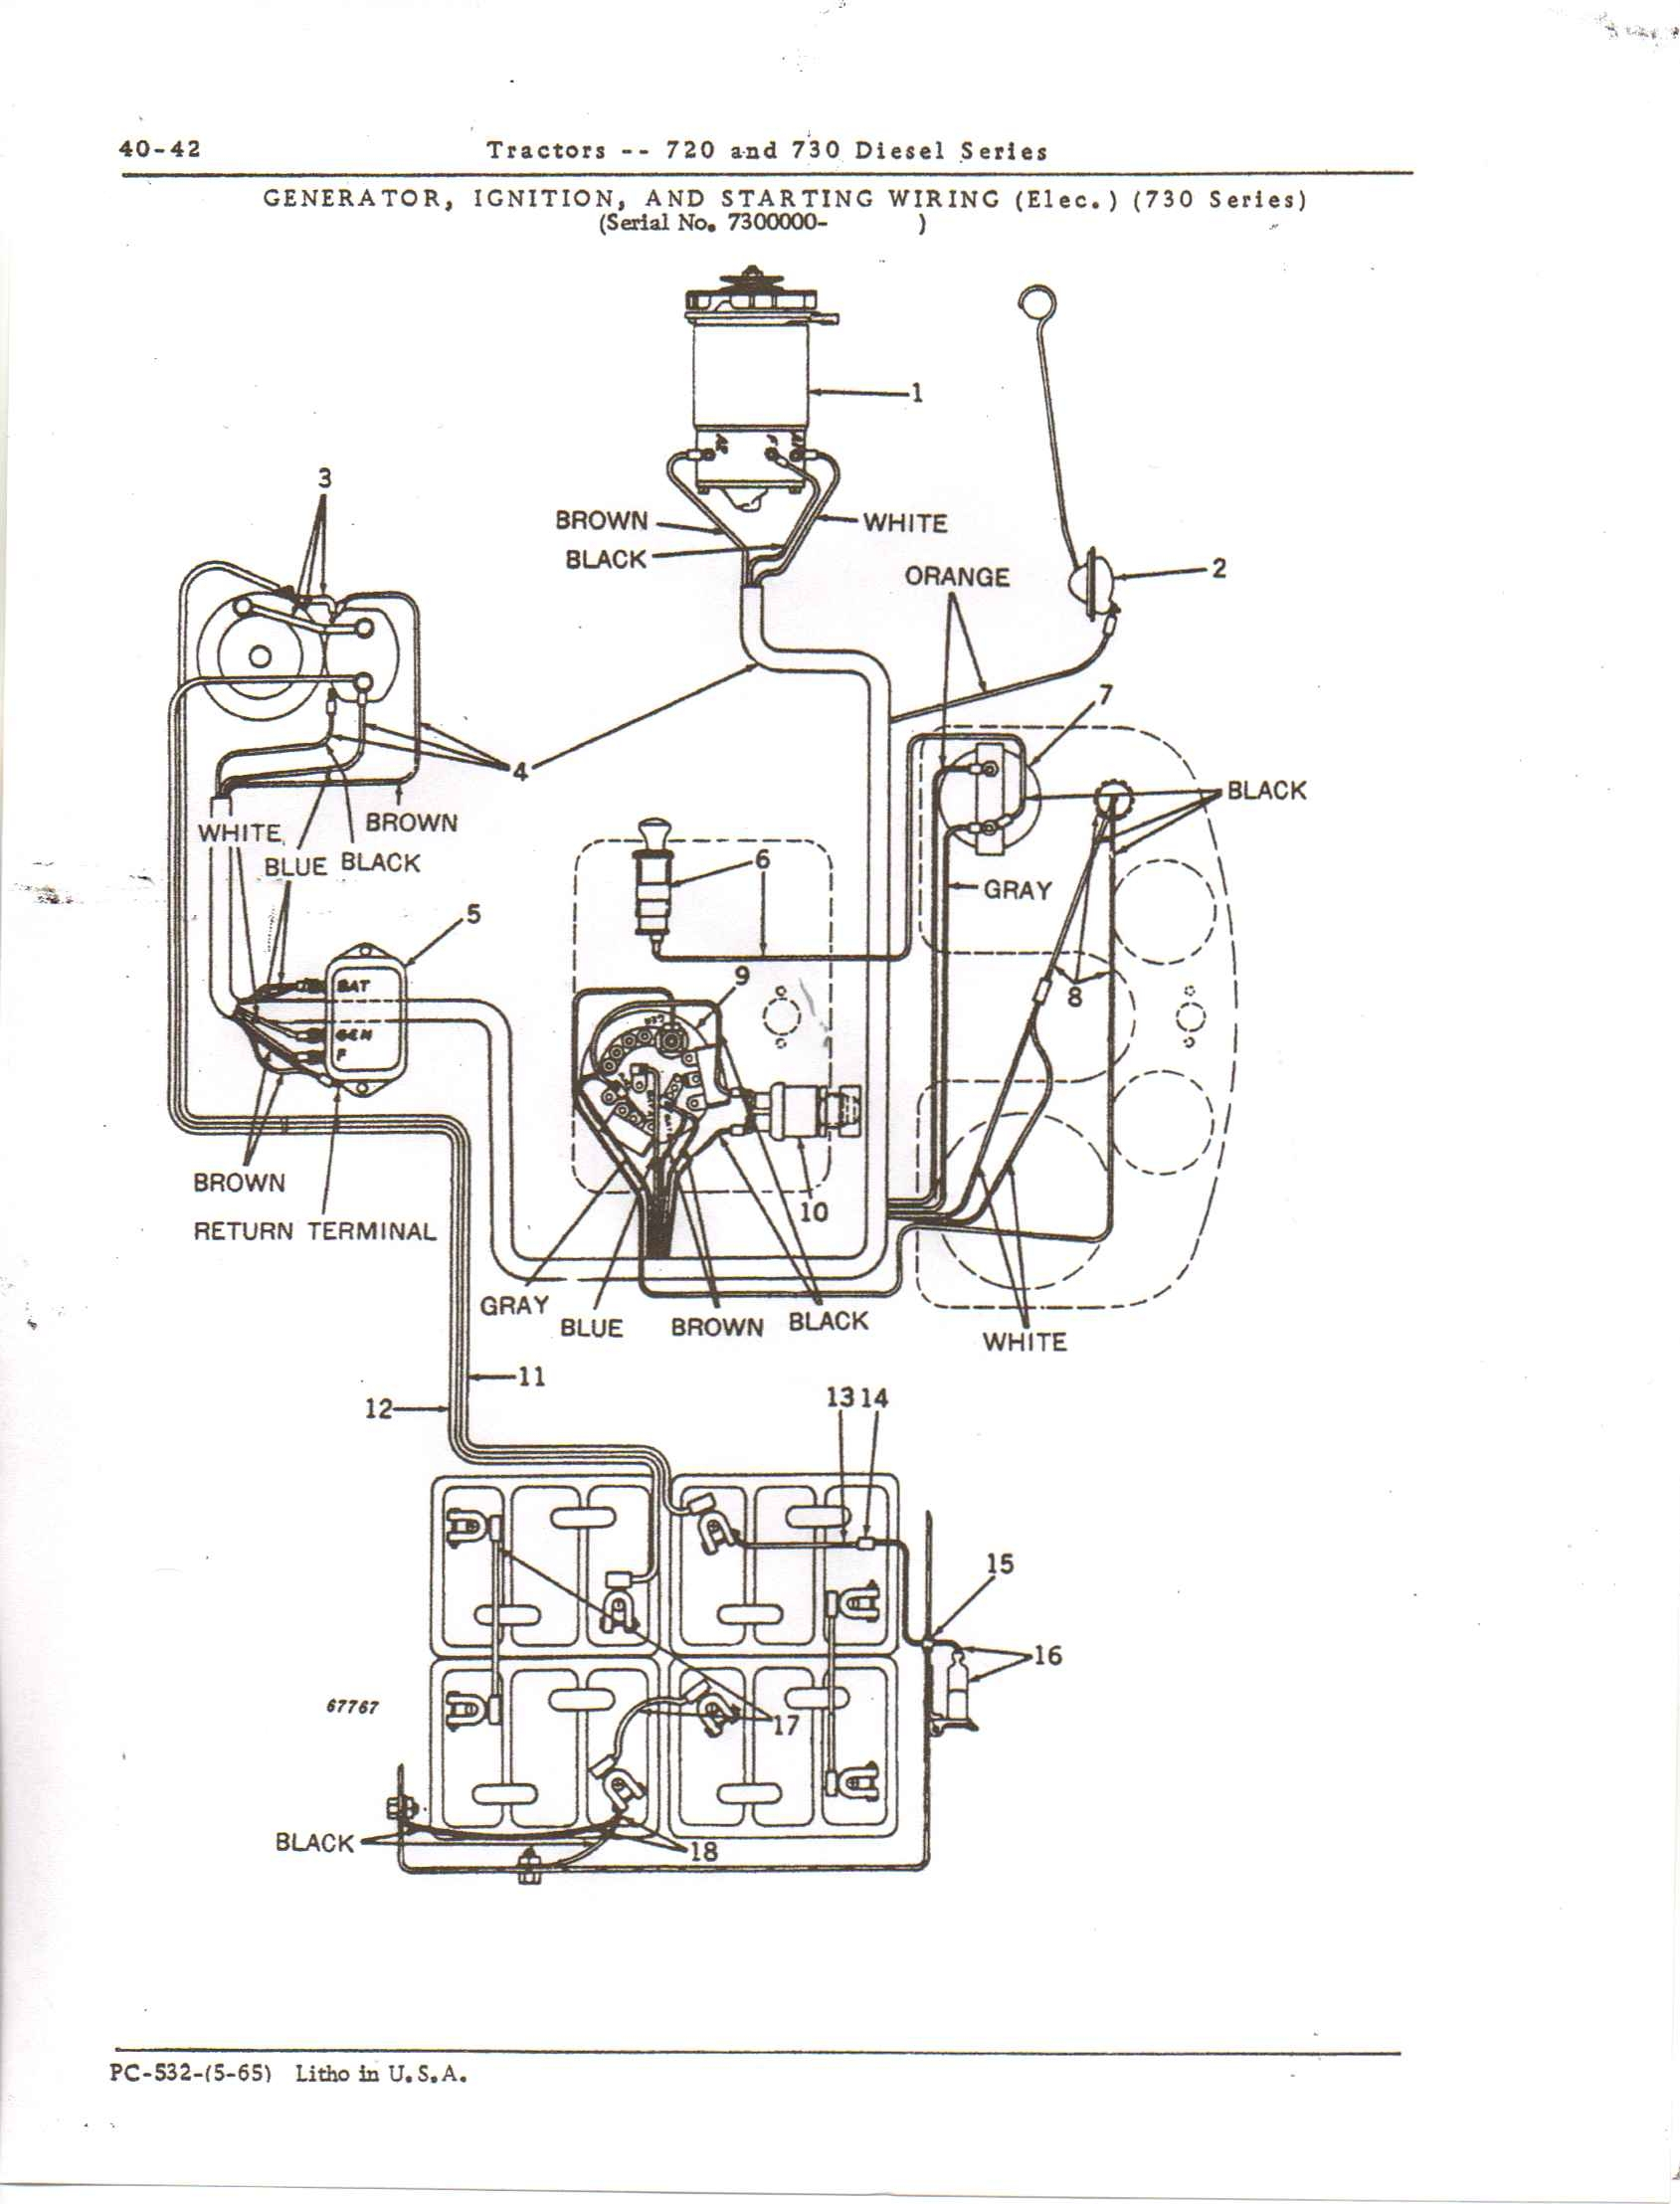 4230 John Deere Wiring Diagram | Wiring Schematic Diagram ... Jd Starter Wiring Diagram on jd 4230 tractor, mf 165 wiring diagram, ih super a wiring diagram, ford 3000 wiring diagram,